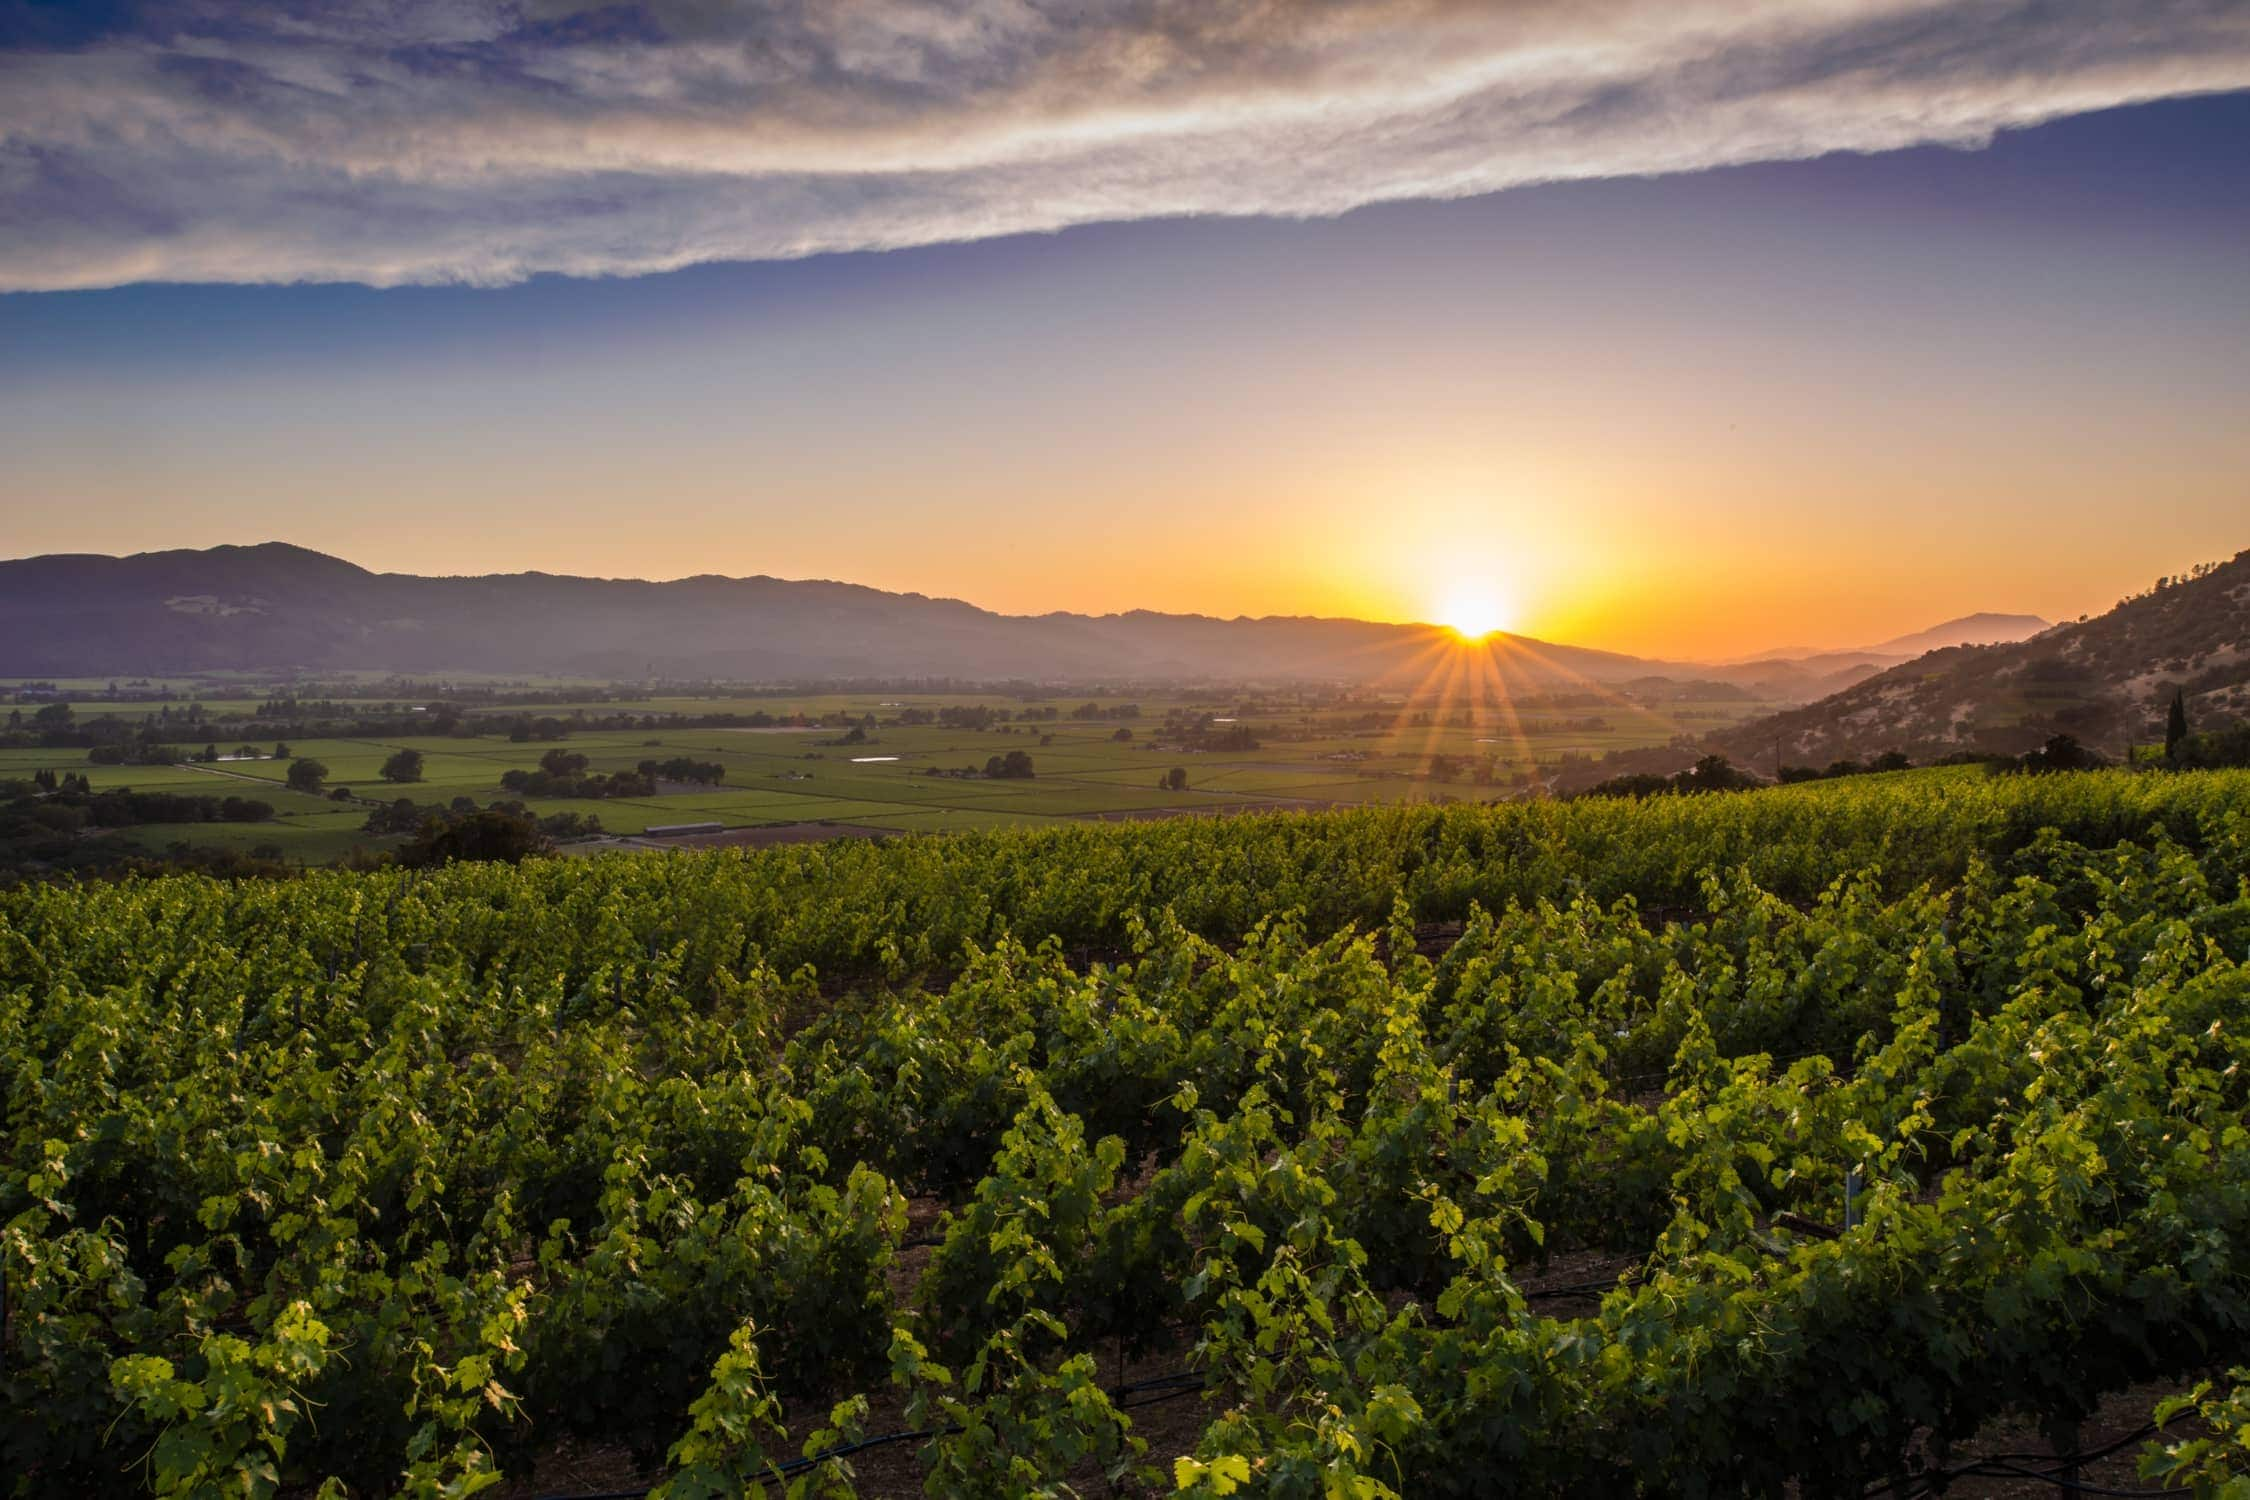 What Is The Best Time Of Year To Visit Napa Valley?